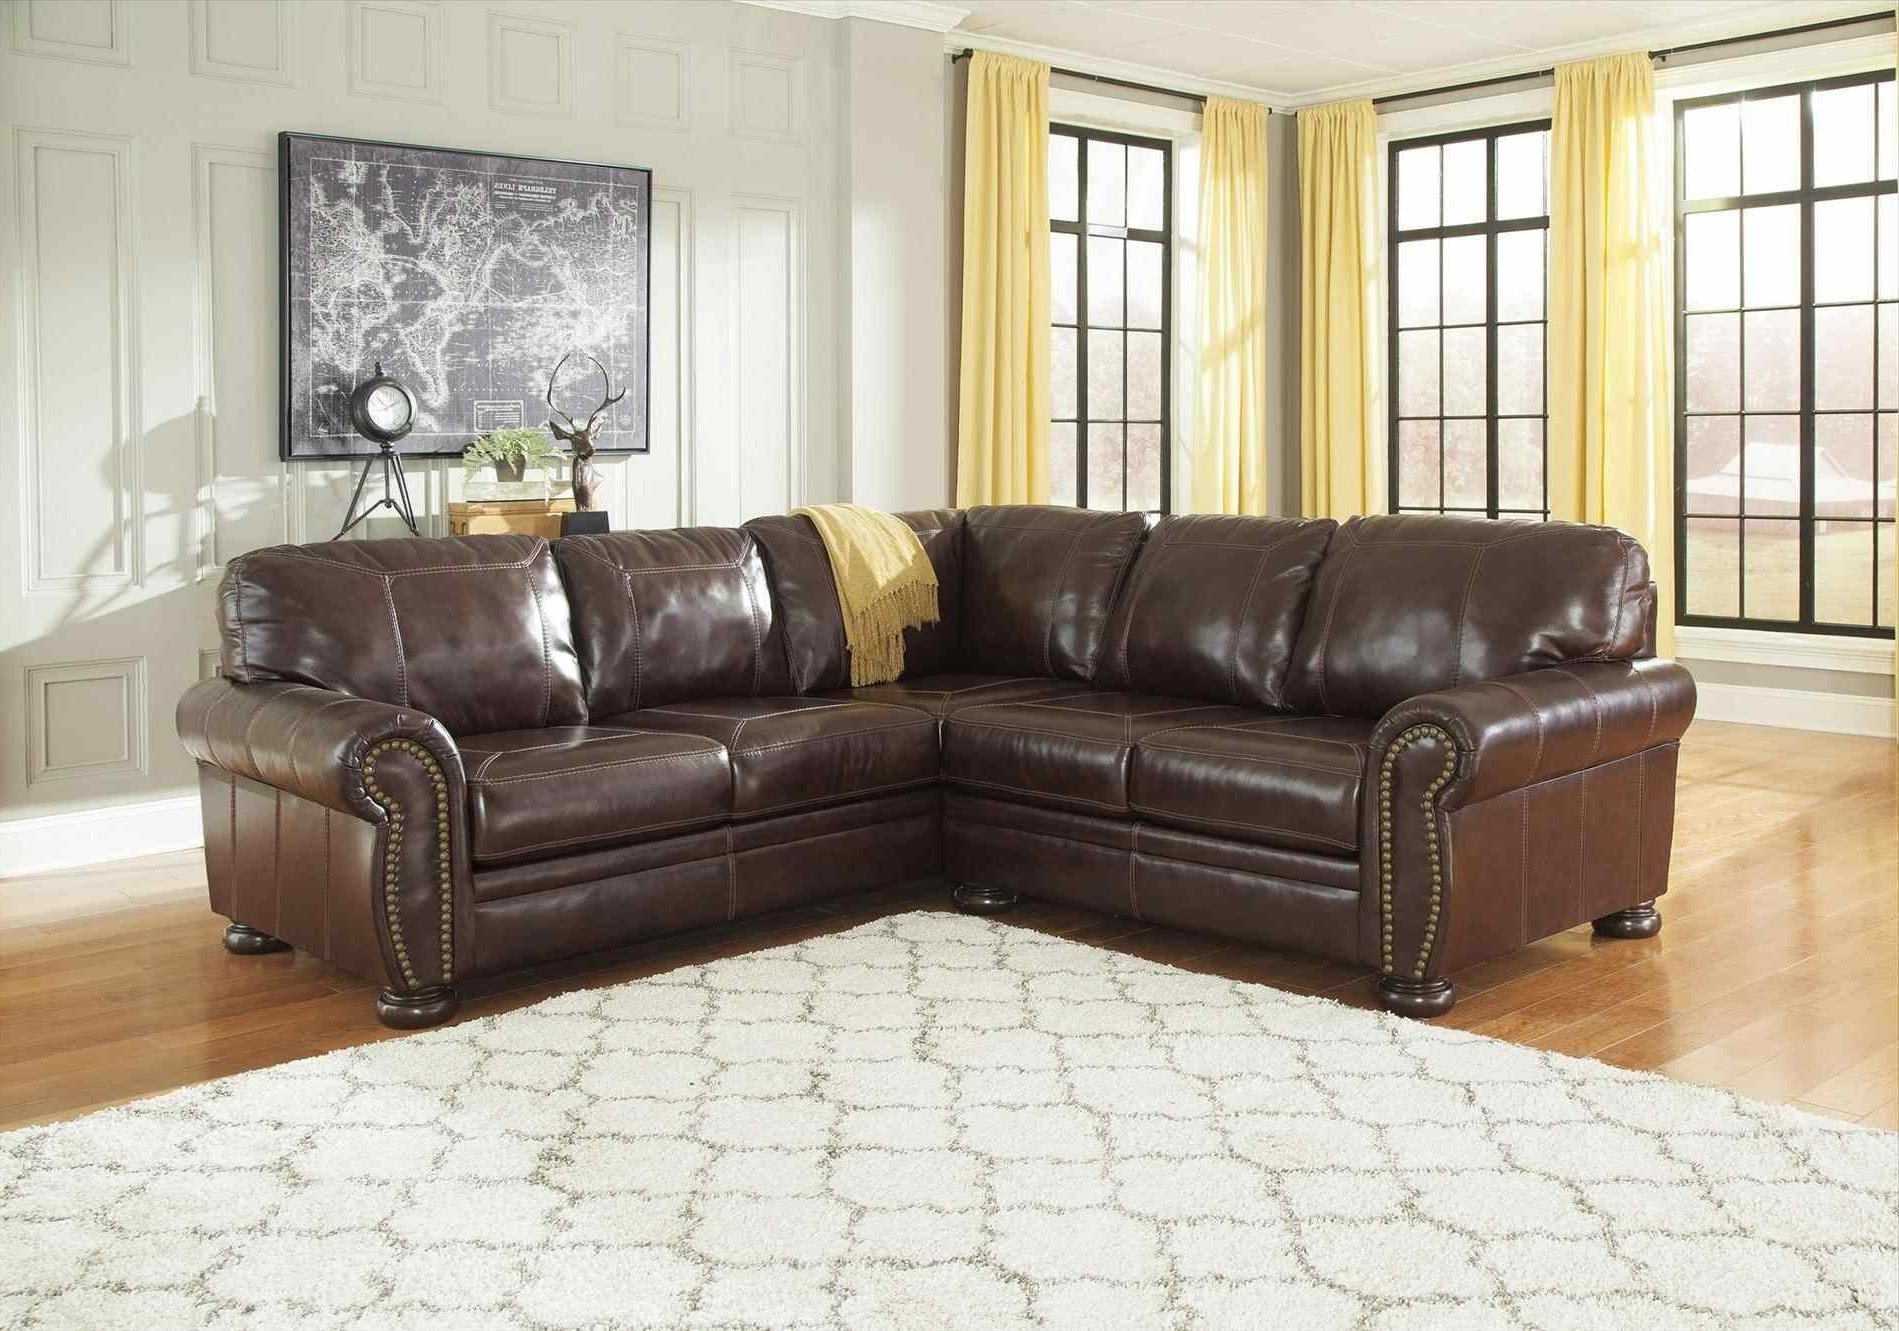 Latest Couch : Genuine Leather Couches Kramfors Lshape Sectional Youtube Regarding Nj Sectional Sofas (View 7 of 15)